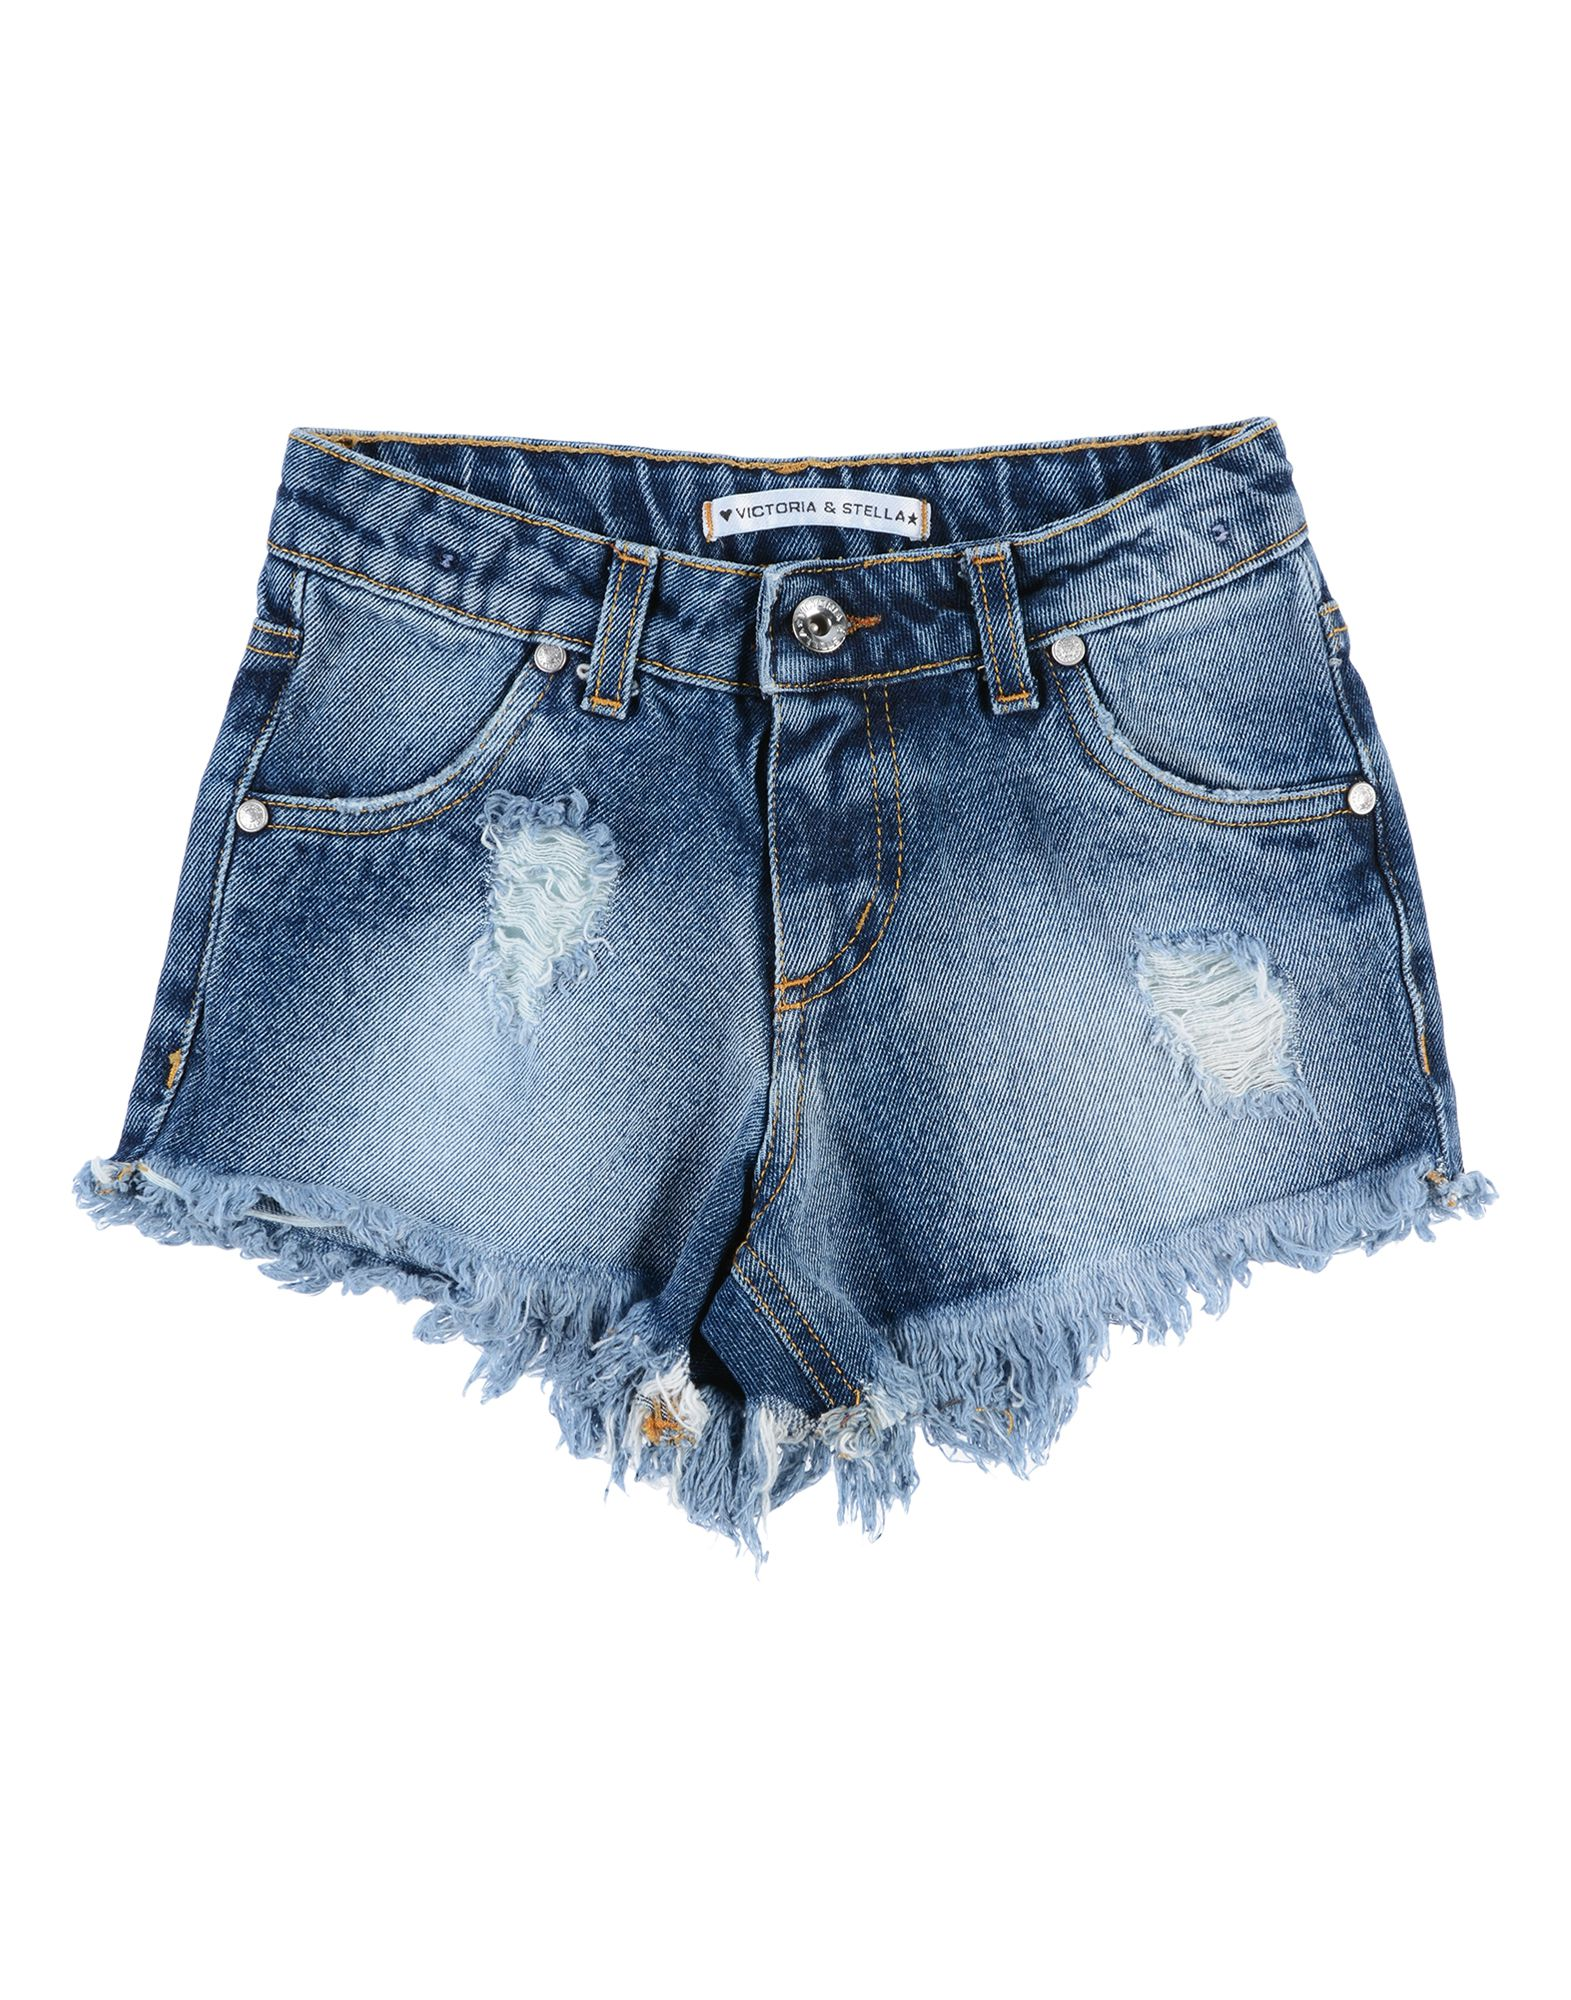 VICTORIA & STELLA Denim shorts - Item 42695753